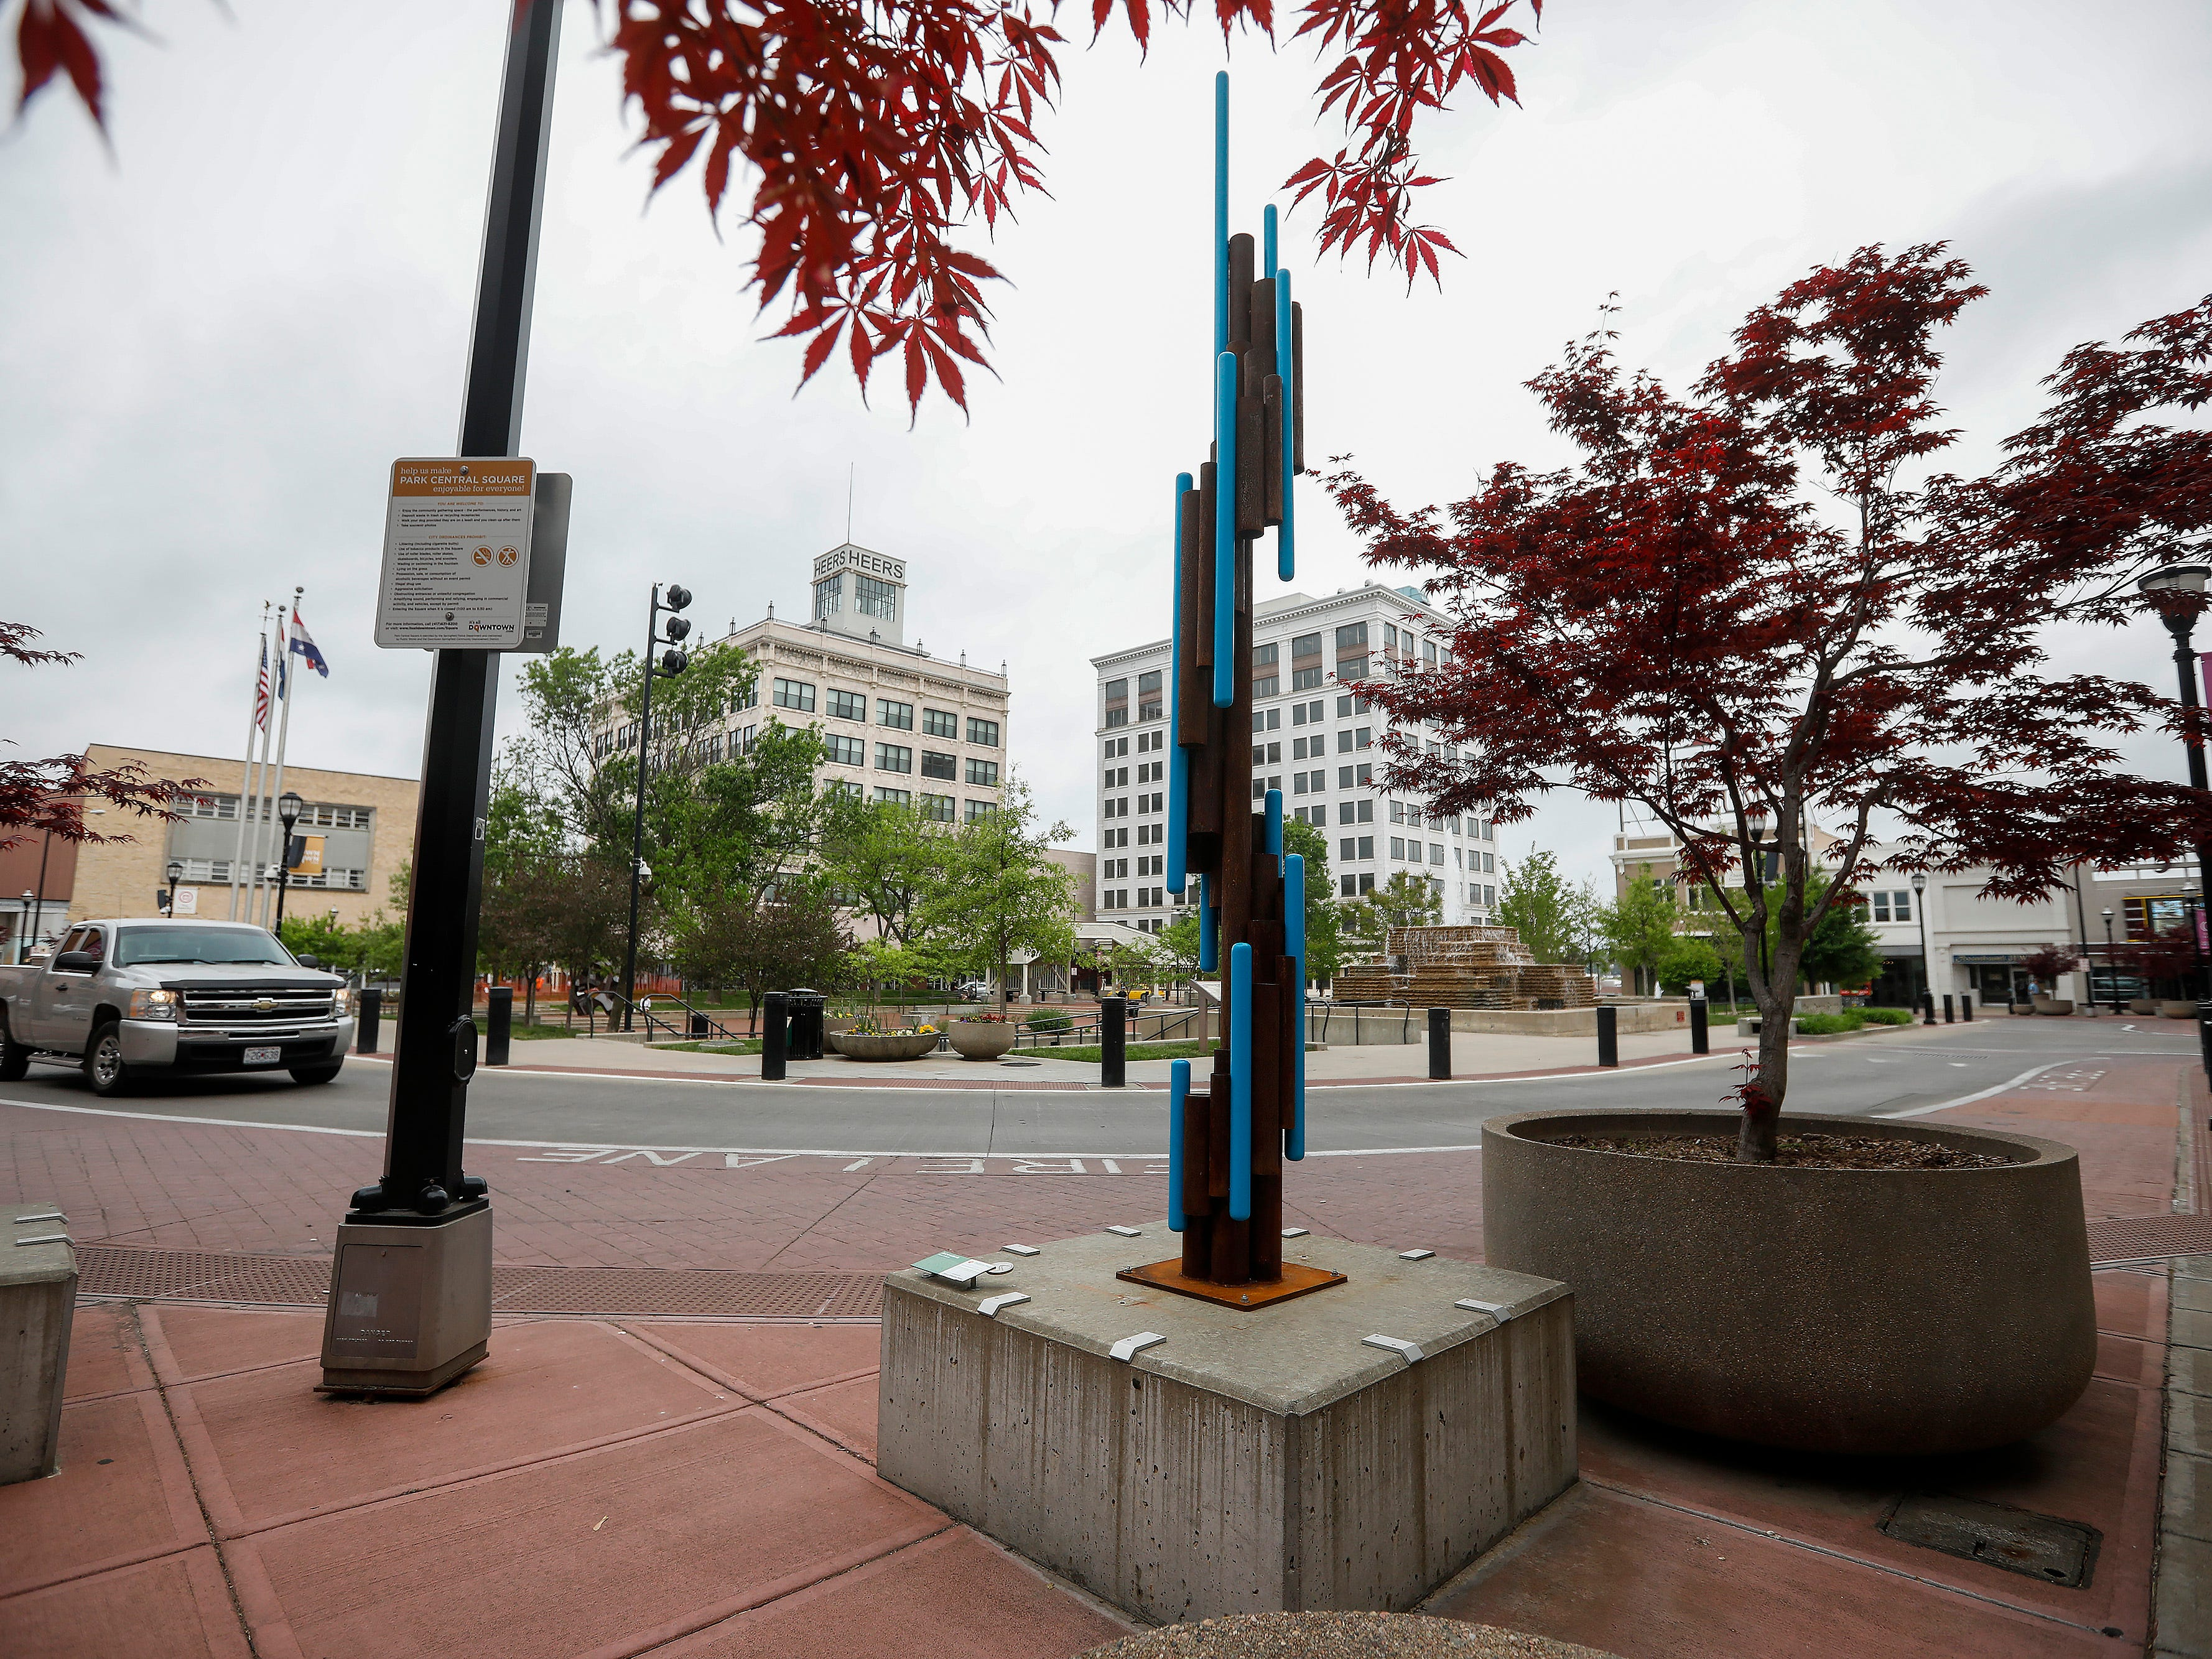 """Ascendents"" by Nick Willett is located on the southeast corner of Park Central Square."